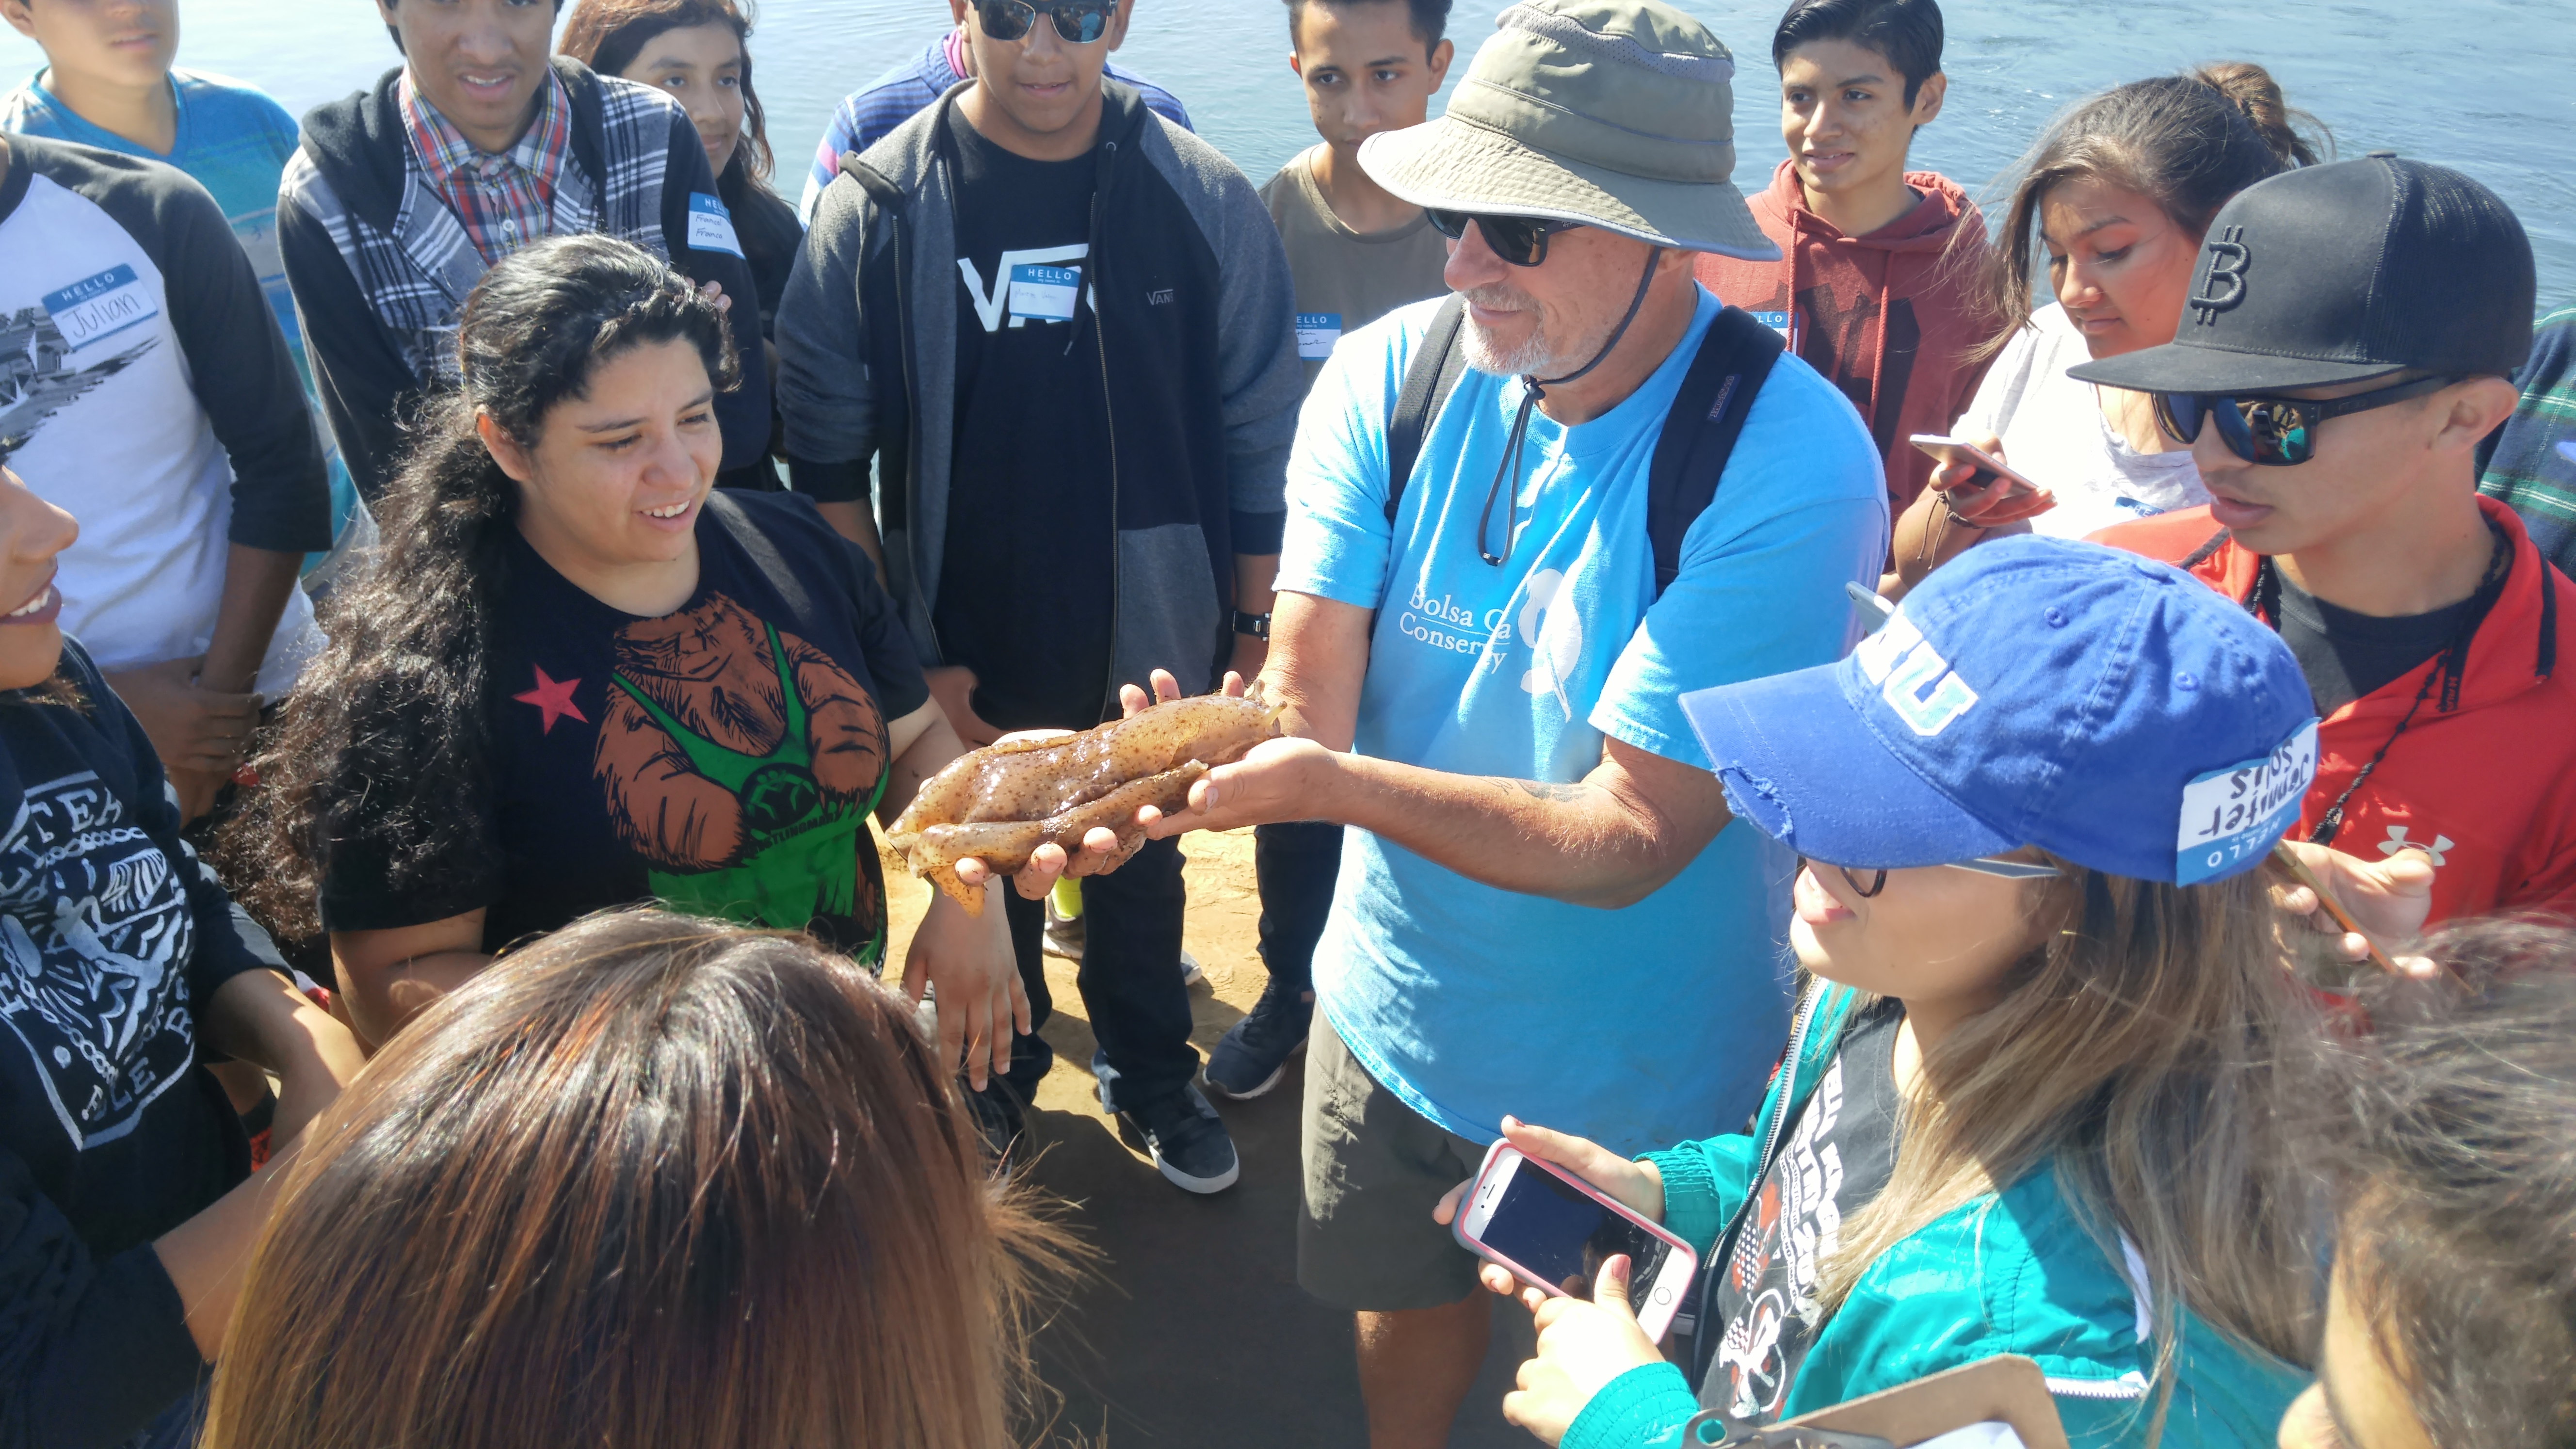 A group of students gather around to learn about a sea creature at Bolsa Chica Conservancy